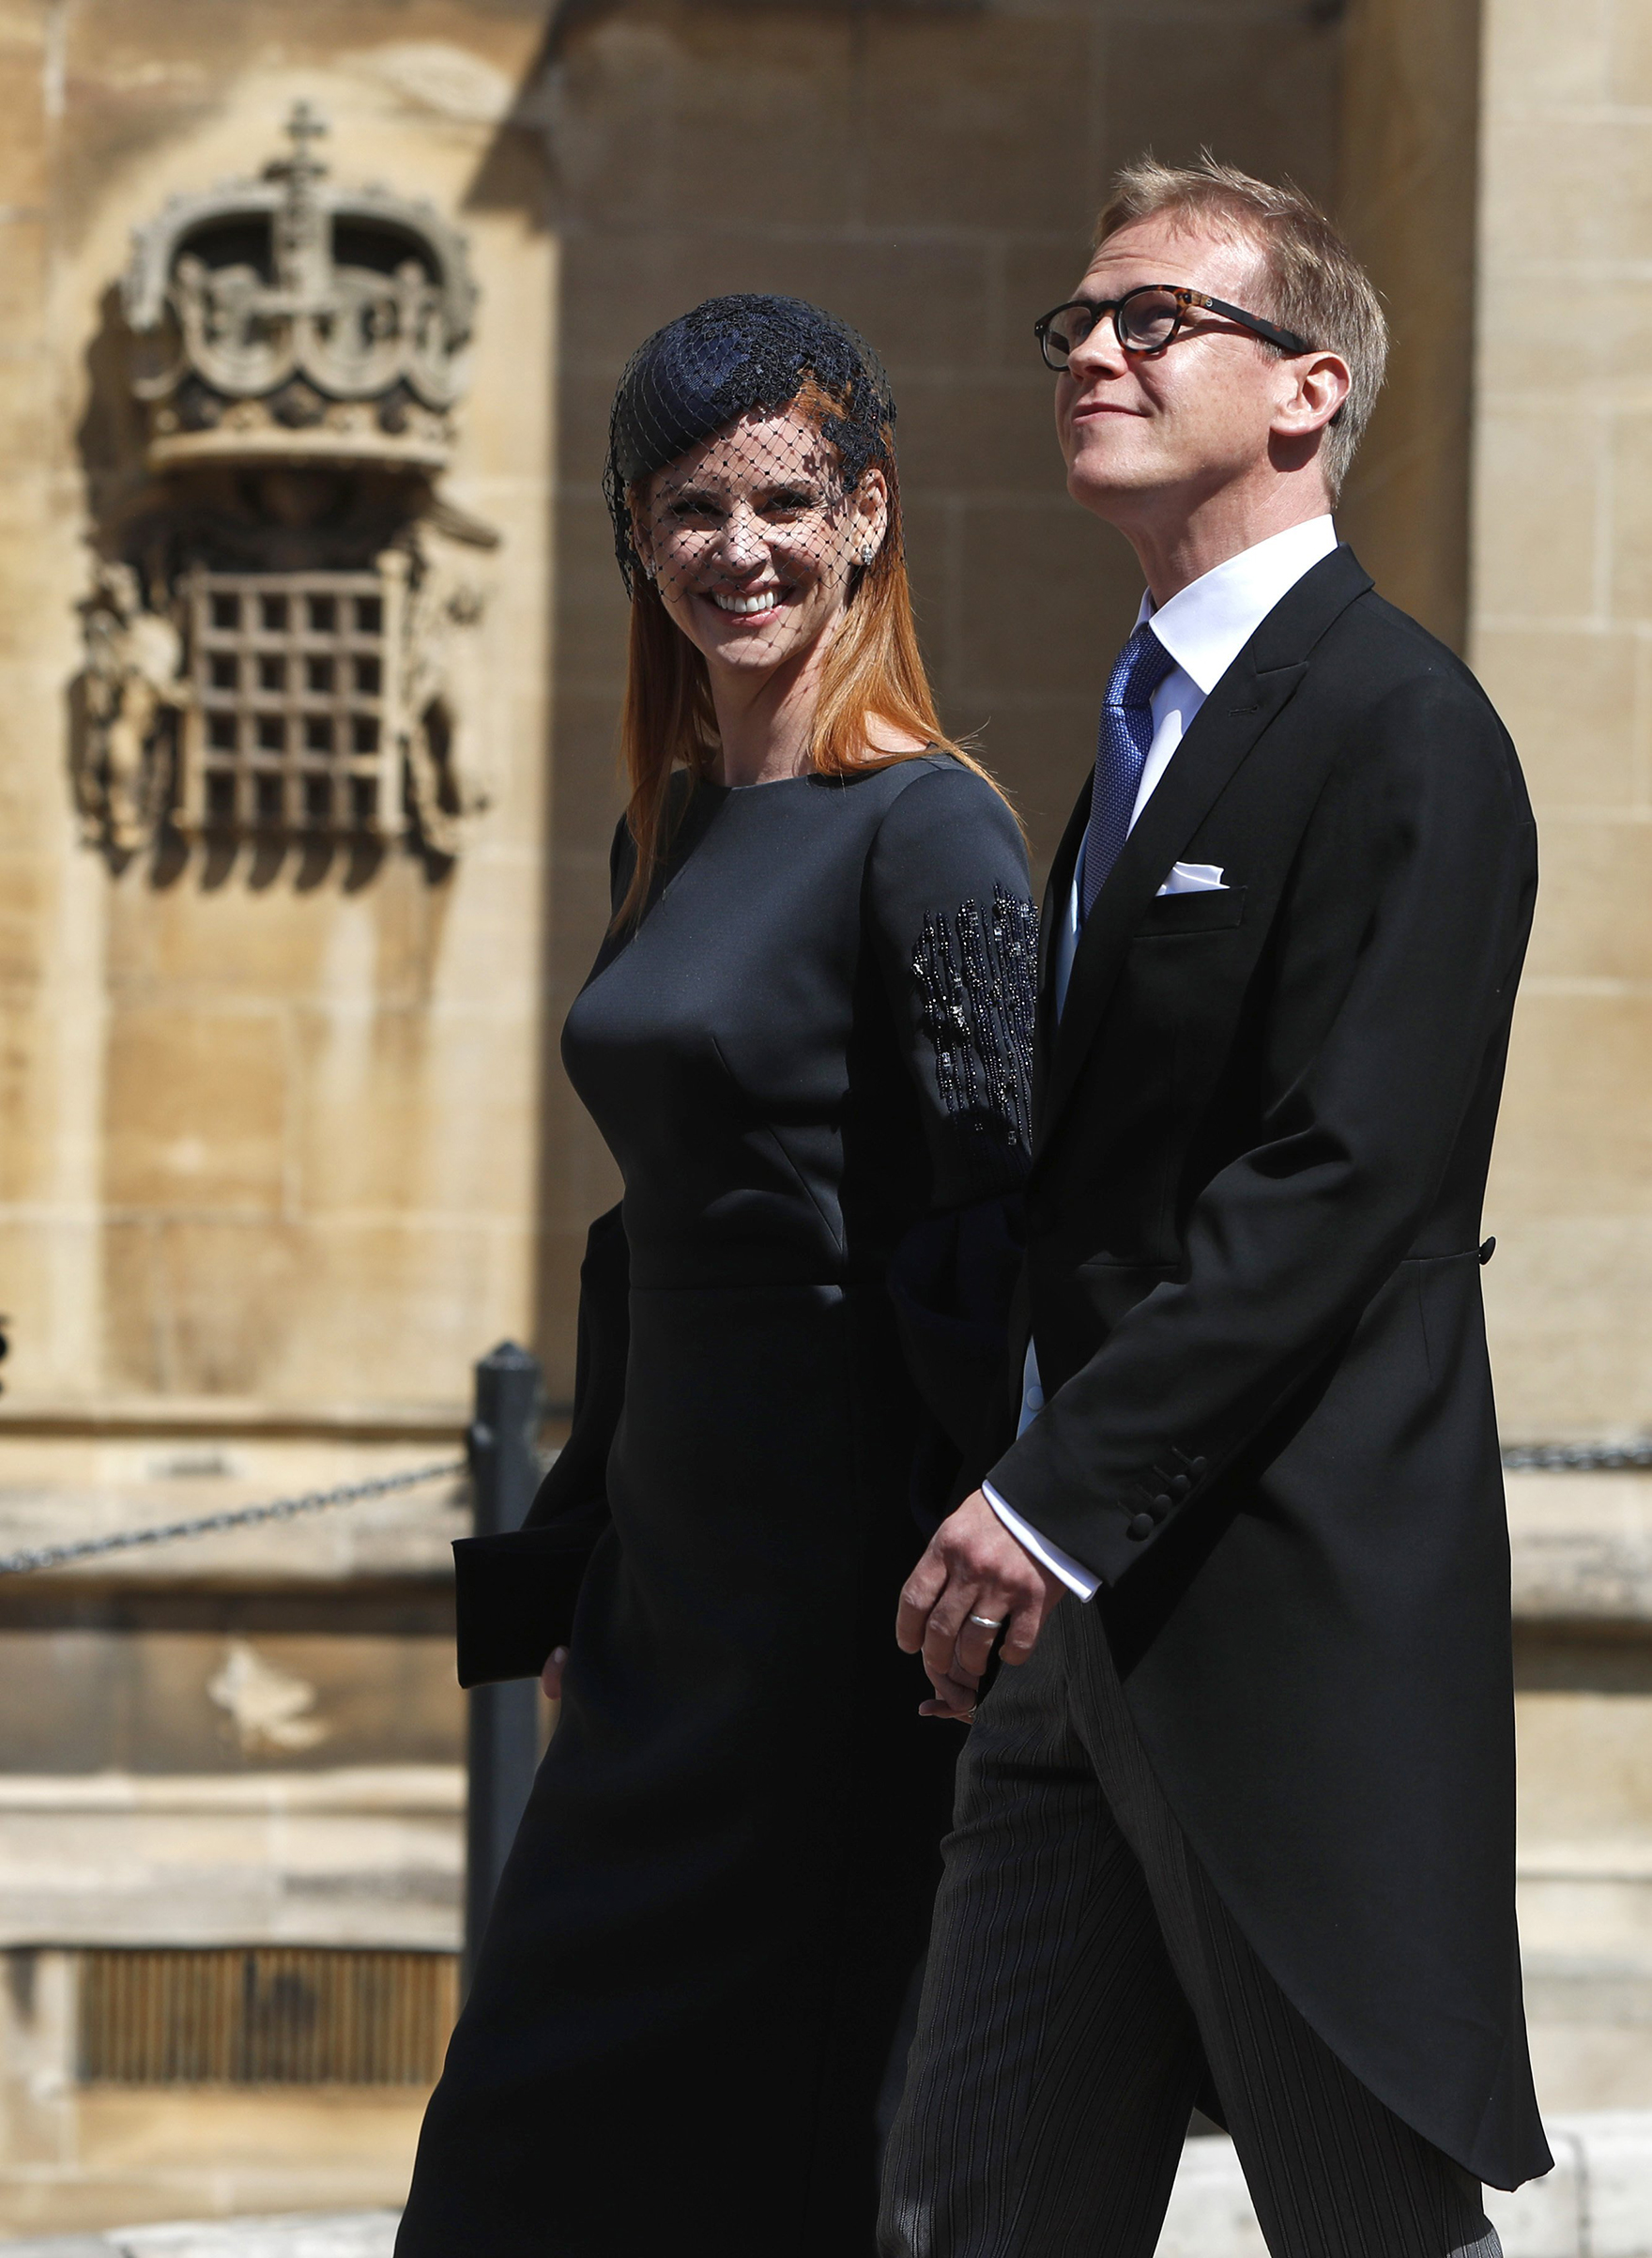 Sarah Rafferty and Santtu Seppala arrive for the wedding of Britain's Prince Harry, Duke of Sussex and Meghan Markle at St George's Chapel, Windsor Castle, in Windsor, on May 19, 2018.